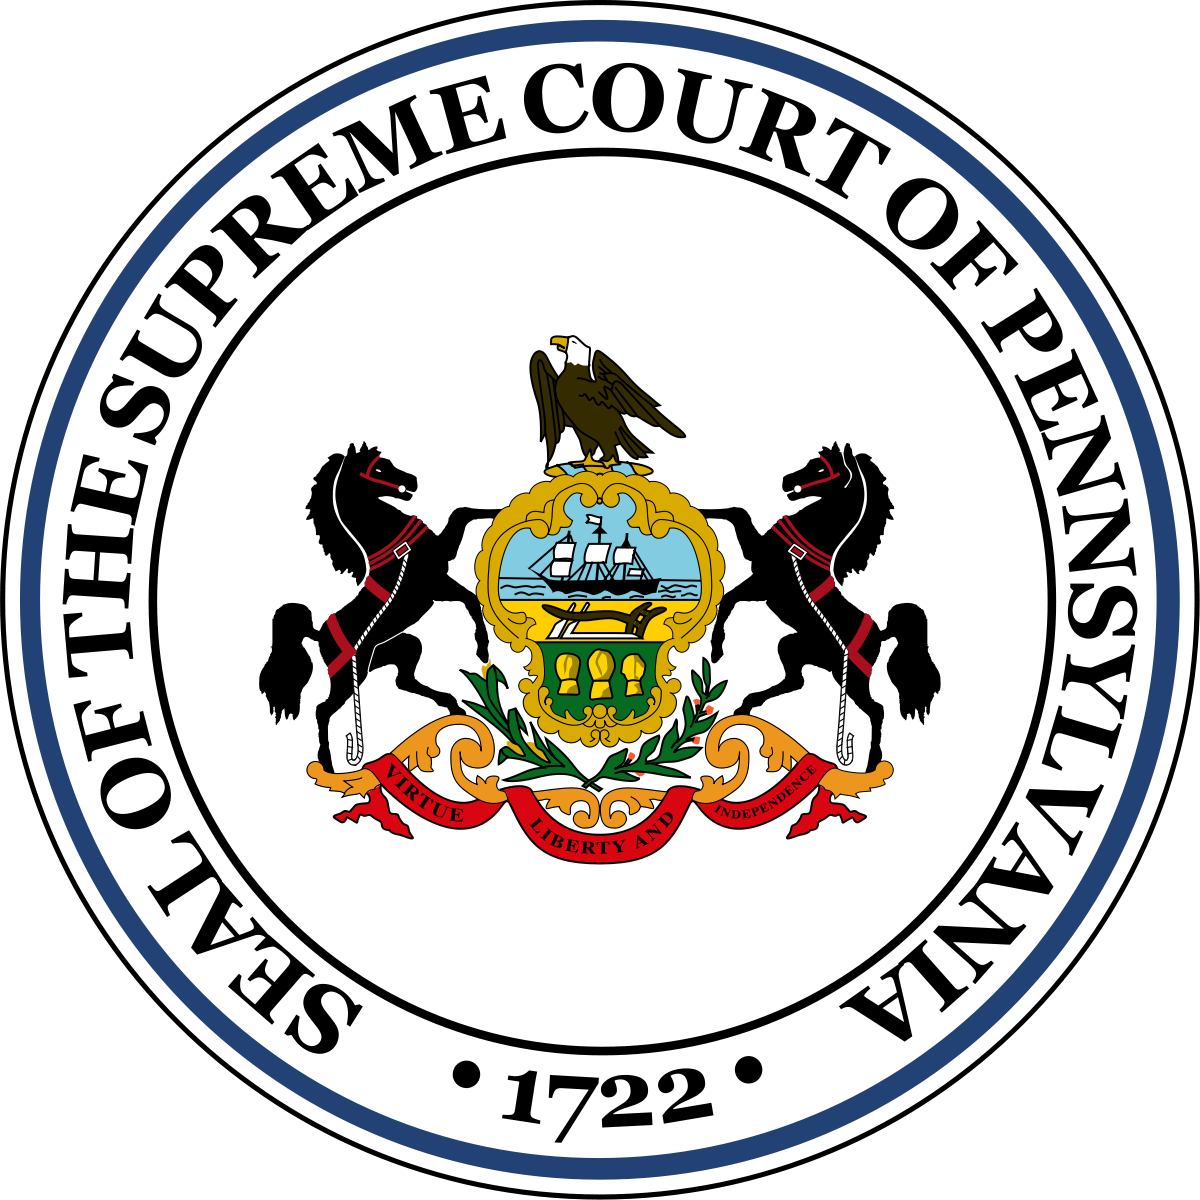 Court drawing. Supreme considers clergy abuse